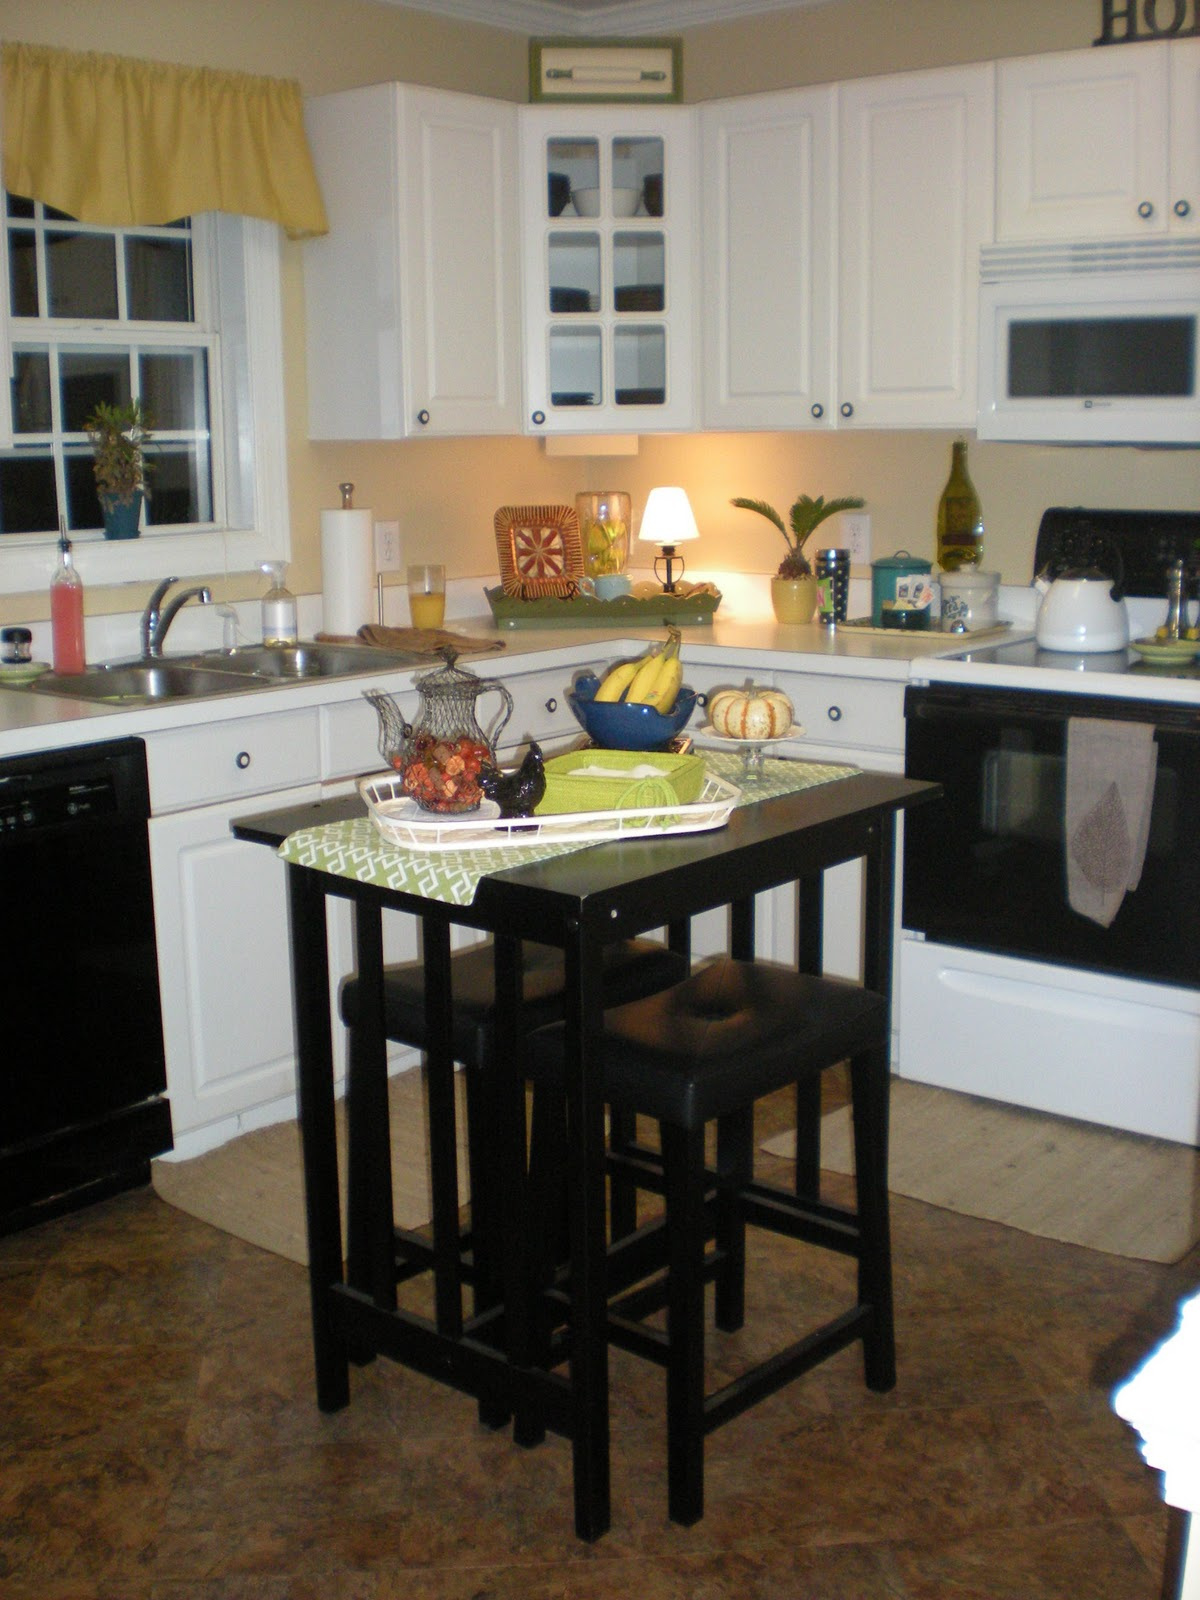 Thrifty finds and redesigns create your own kitchen island for Kitchen design your own